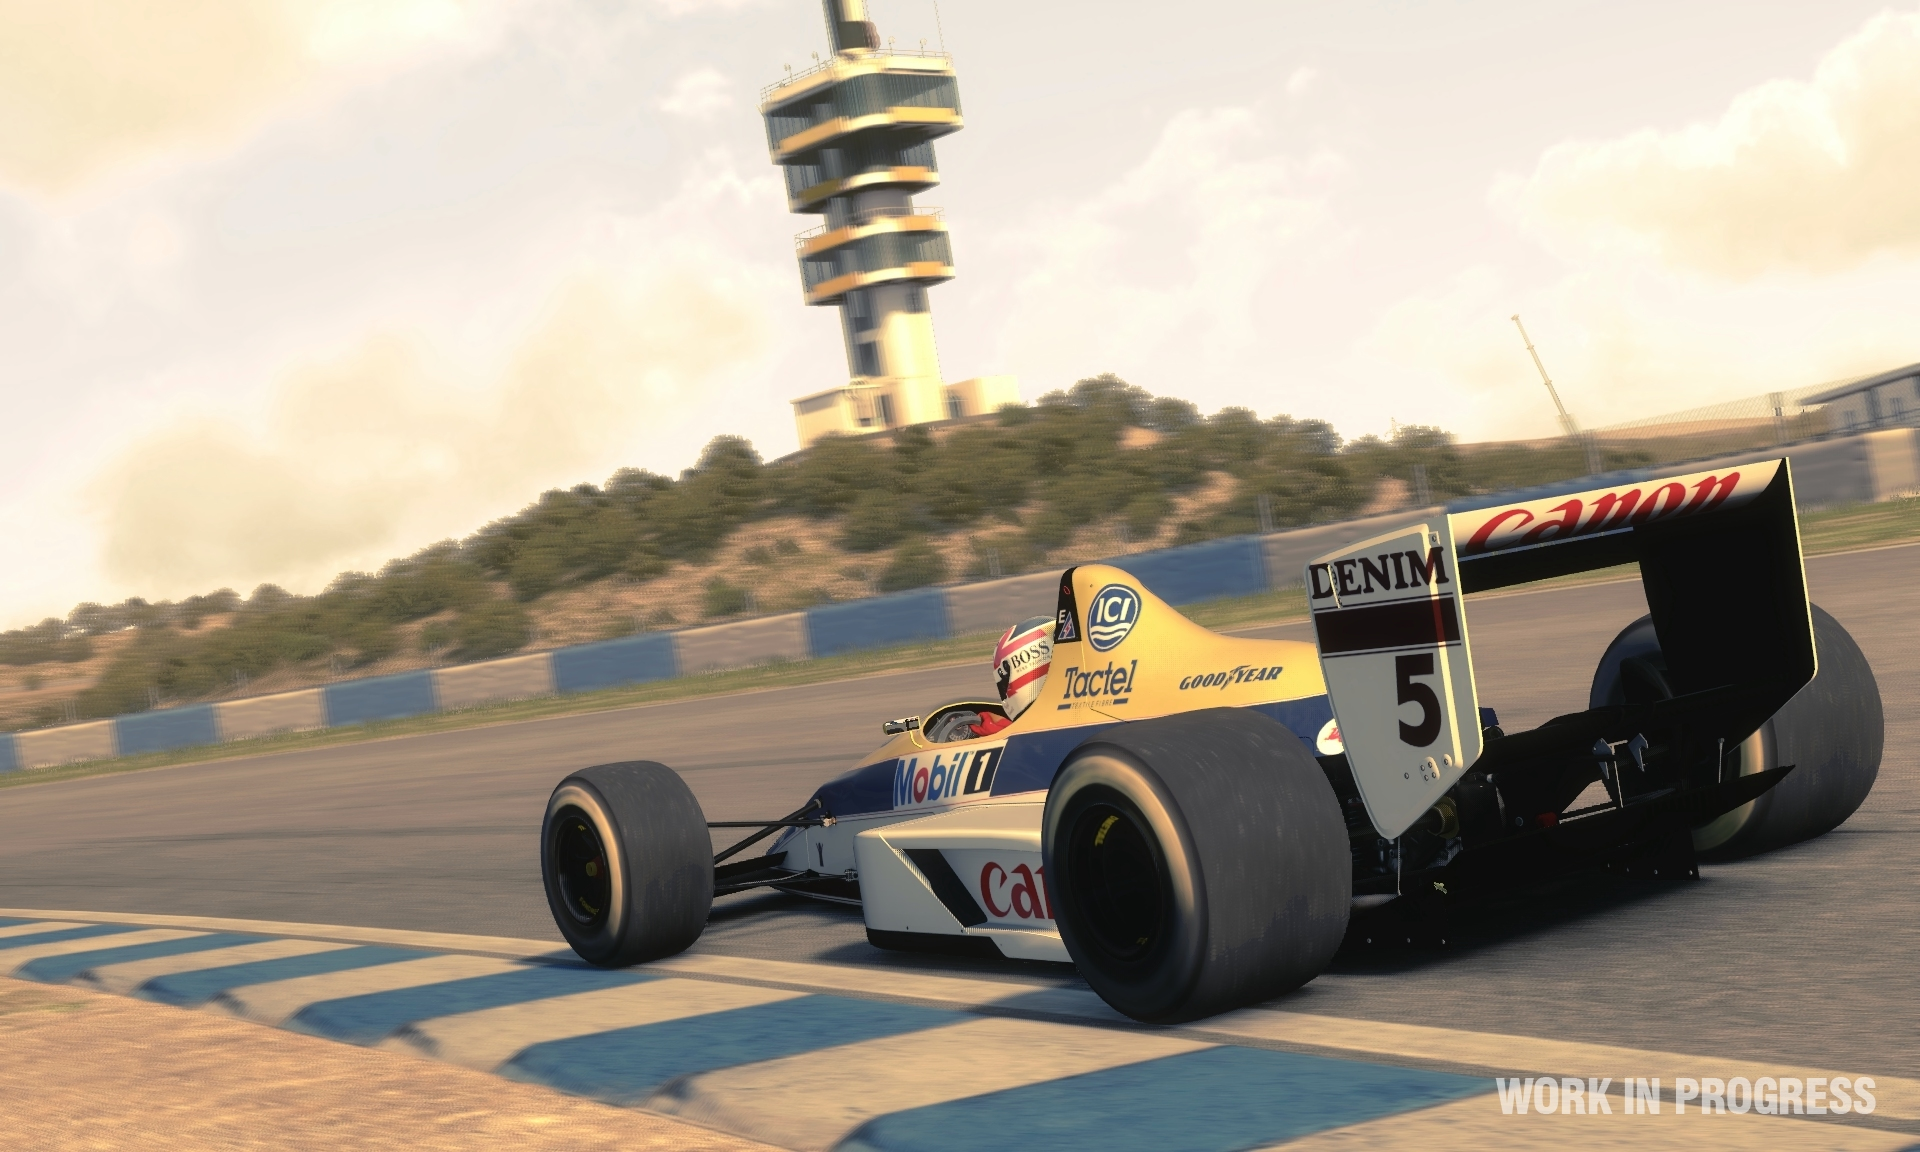 F1 2013 Gets Classic 1990's Cars, Tracks DLC - CINEMABLEND